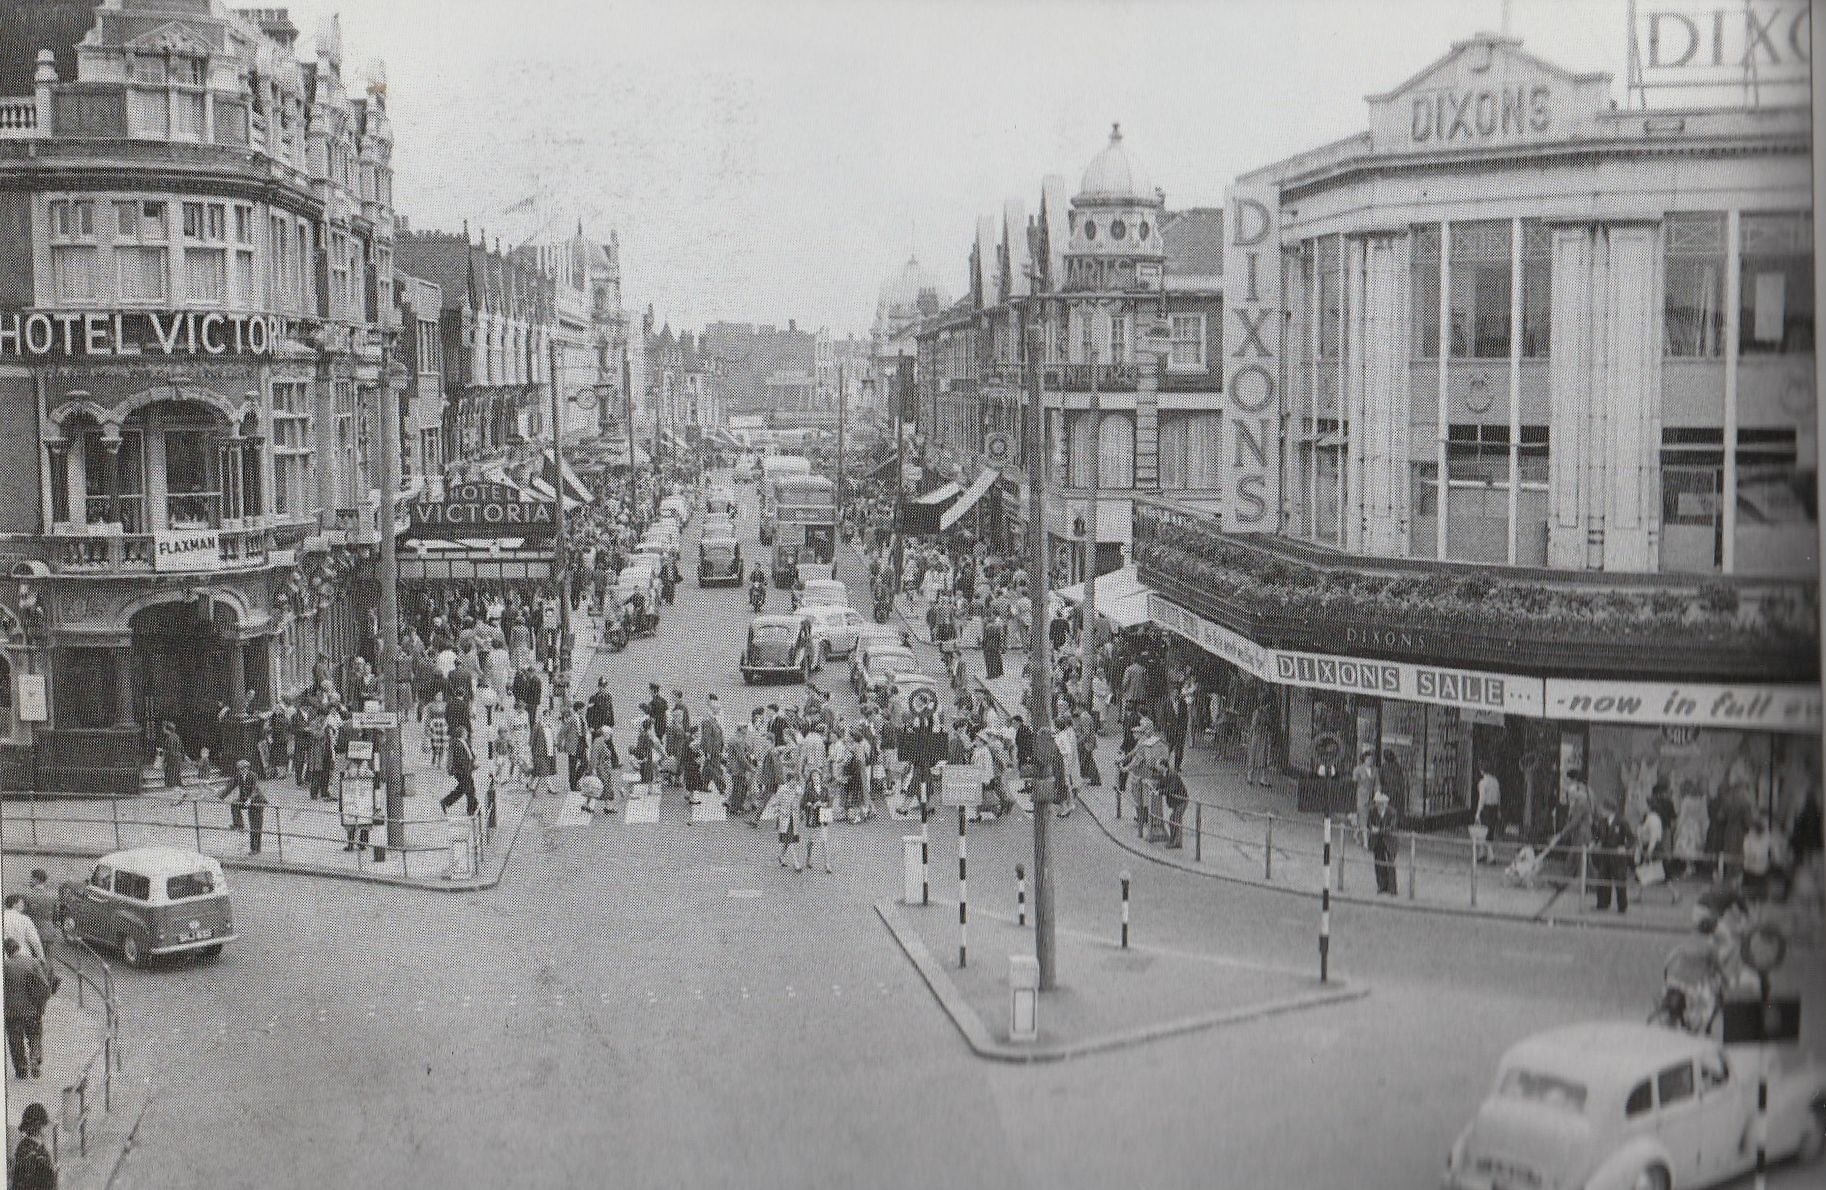 Hotel Victoria And Dixons C1960 Southend On Sea Southend Essex England